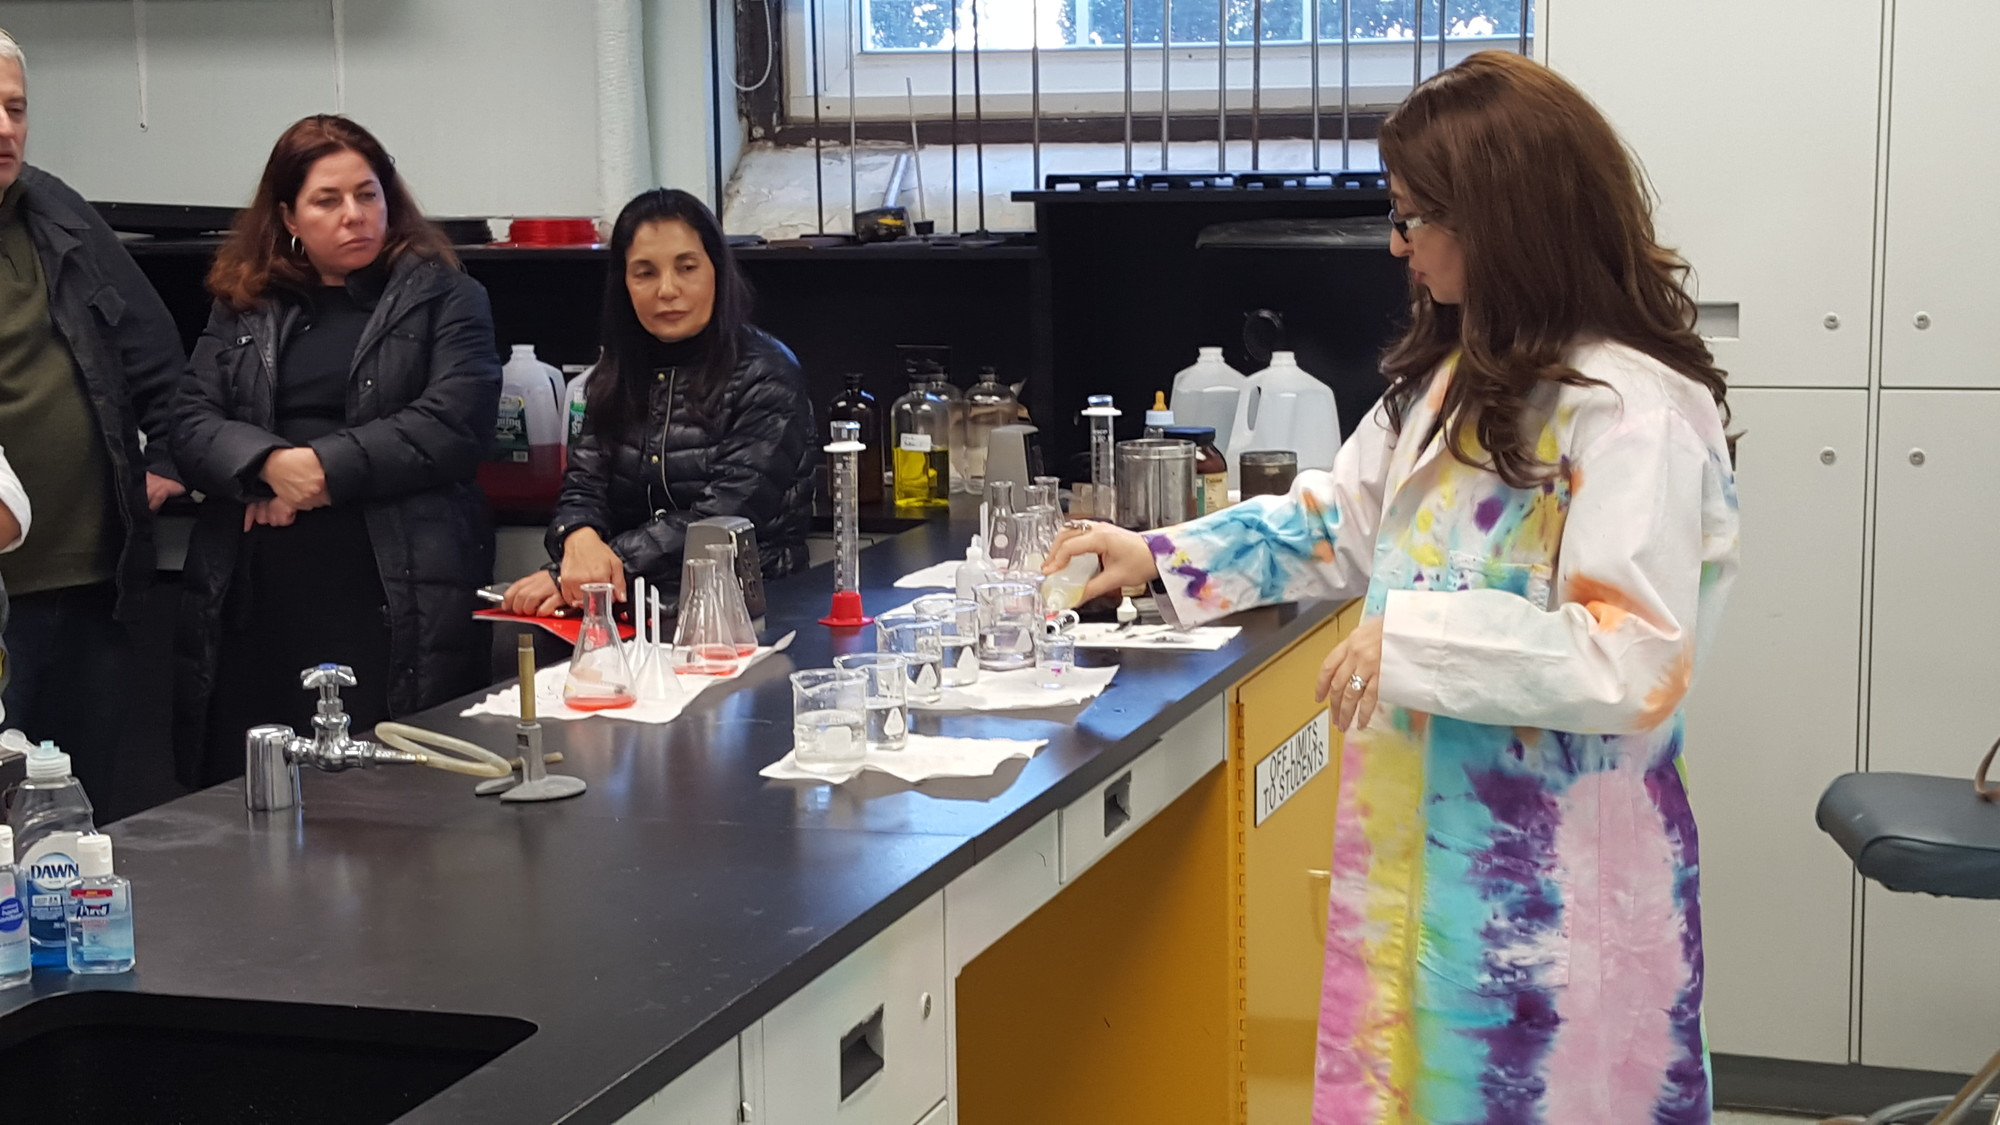 HAFTR Science Chairwoman Rita Sinensky conducted an experiment for parents at the school's open house.